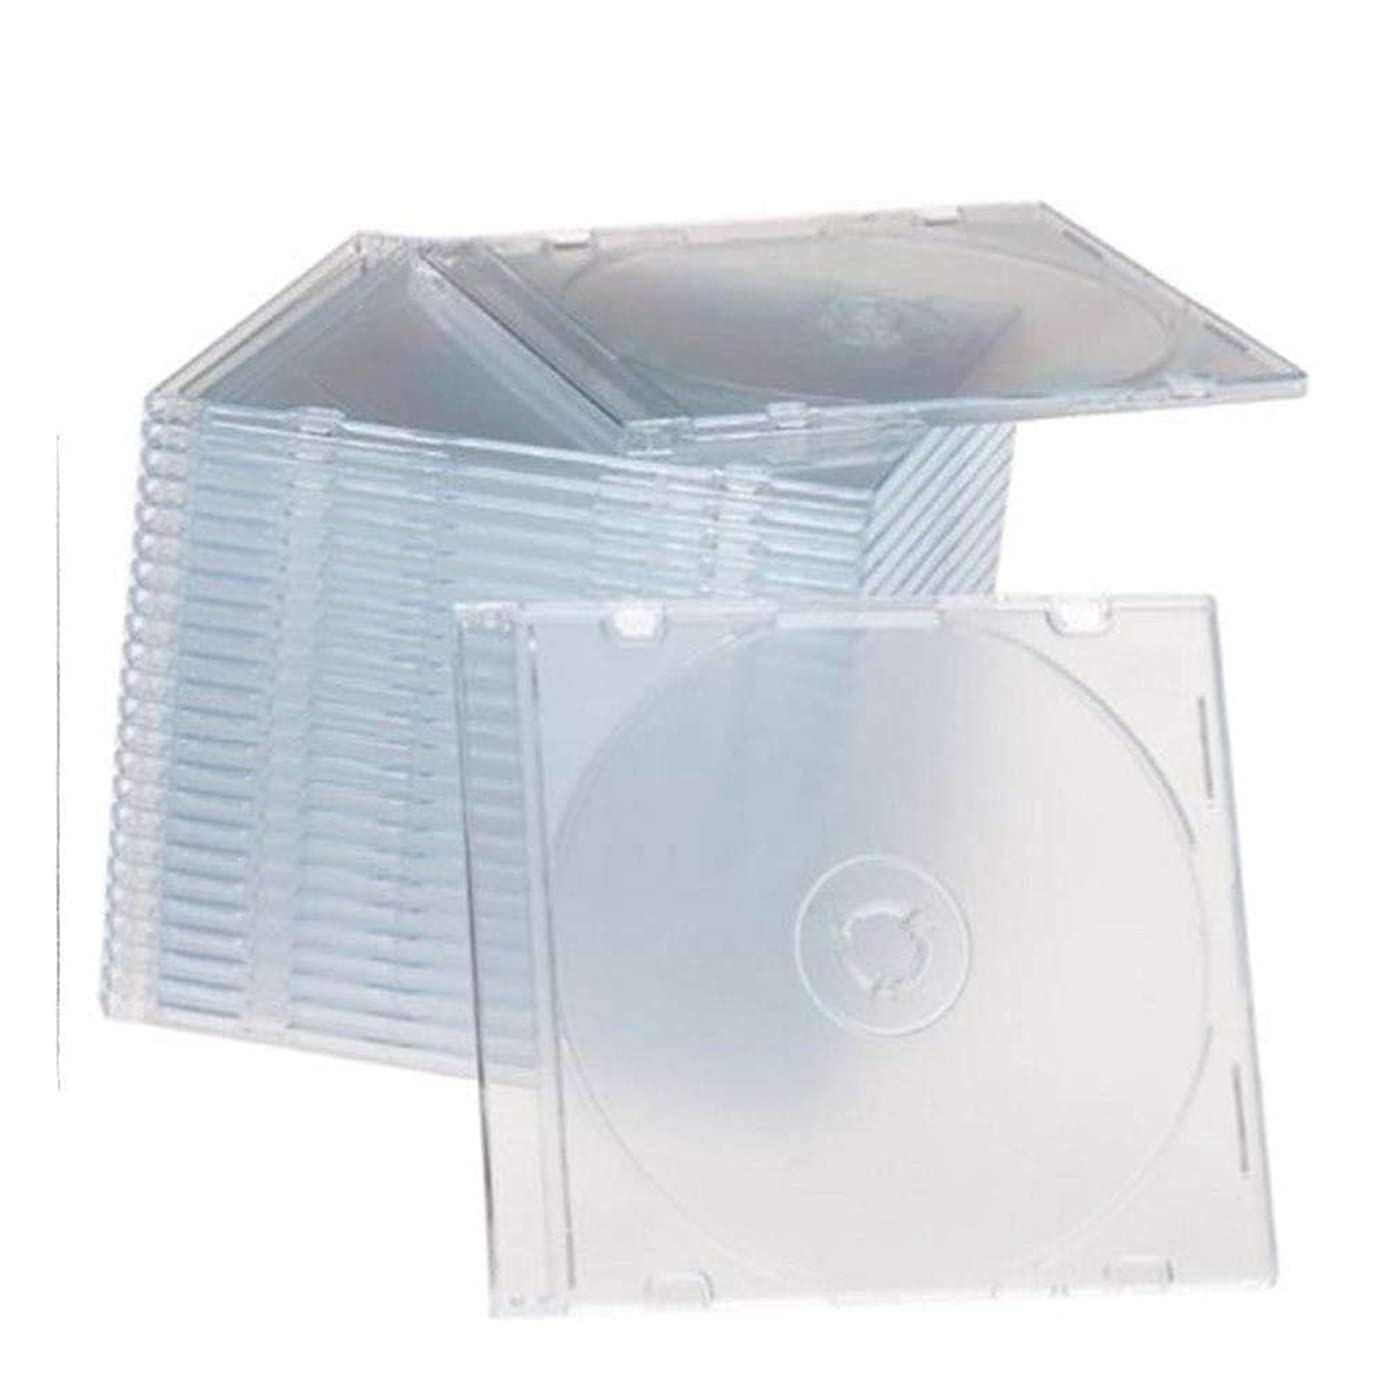 Maxtek Ultra Thin 5.2mm Slim Clear CD Jewel Case with Built in Frost Clear Tray, 100 Pack.